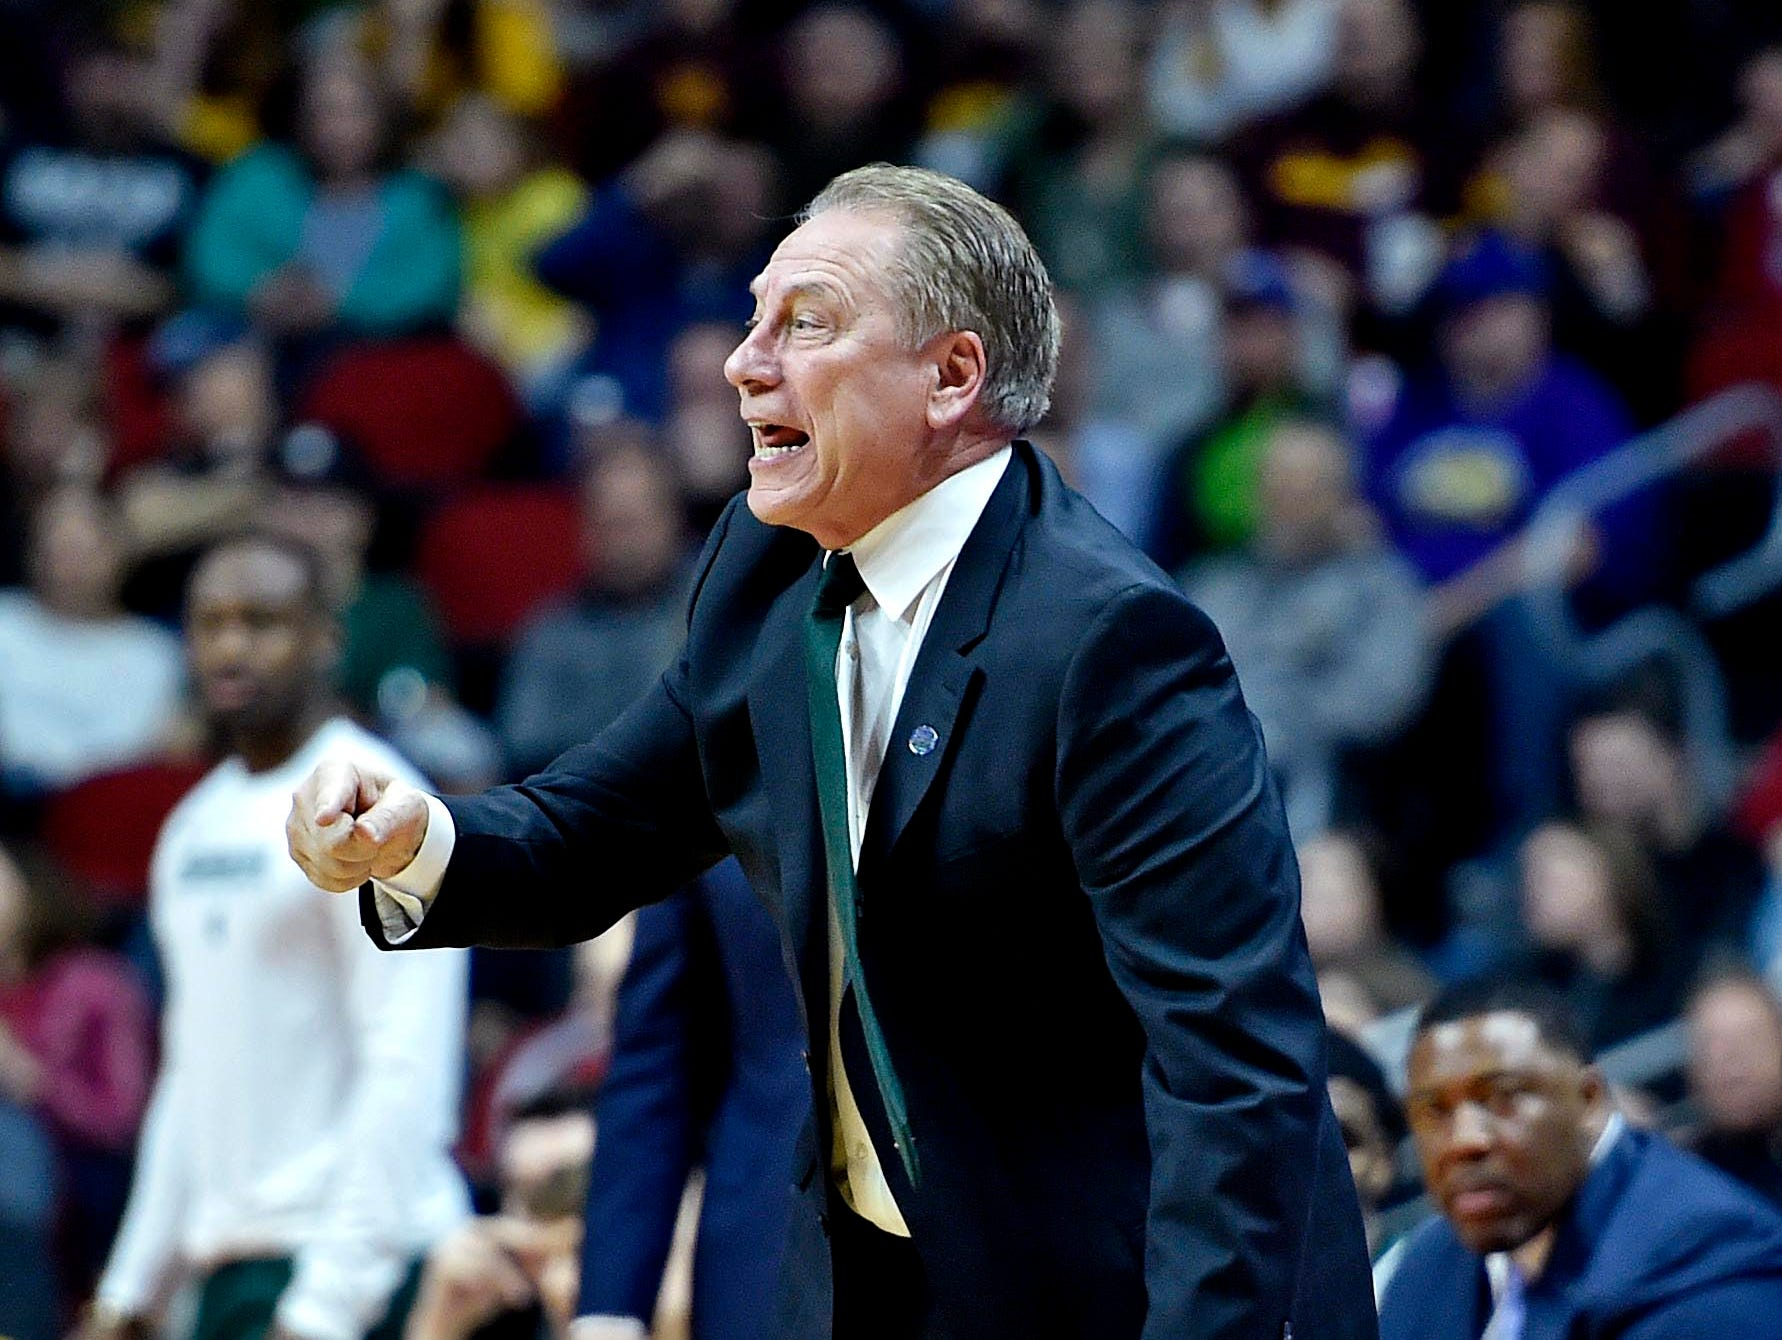 Mar 23, 2019; Des Moines, IA, United States; Michigan State Spartans head coach Tom Izzo reacts during the first half against the Minnesota Golden Gophers in the second round of the 2019 NCAA Tournament at Wells Fargo Arena. Mandatory Credit: Jeffrey Becker-USA TODAY Sports